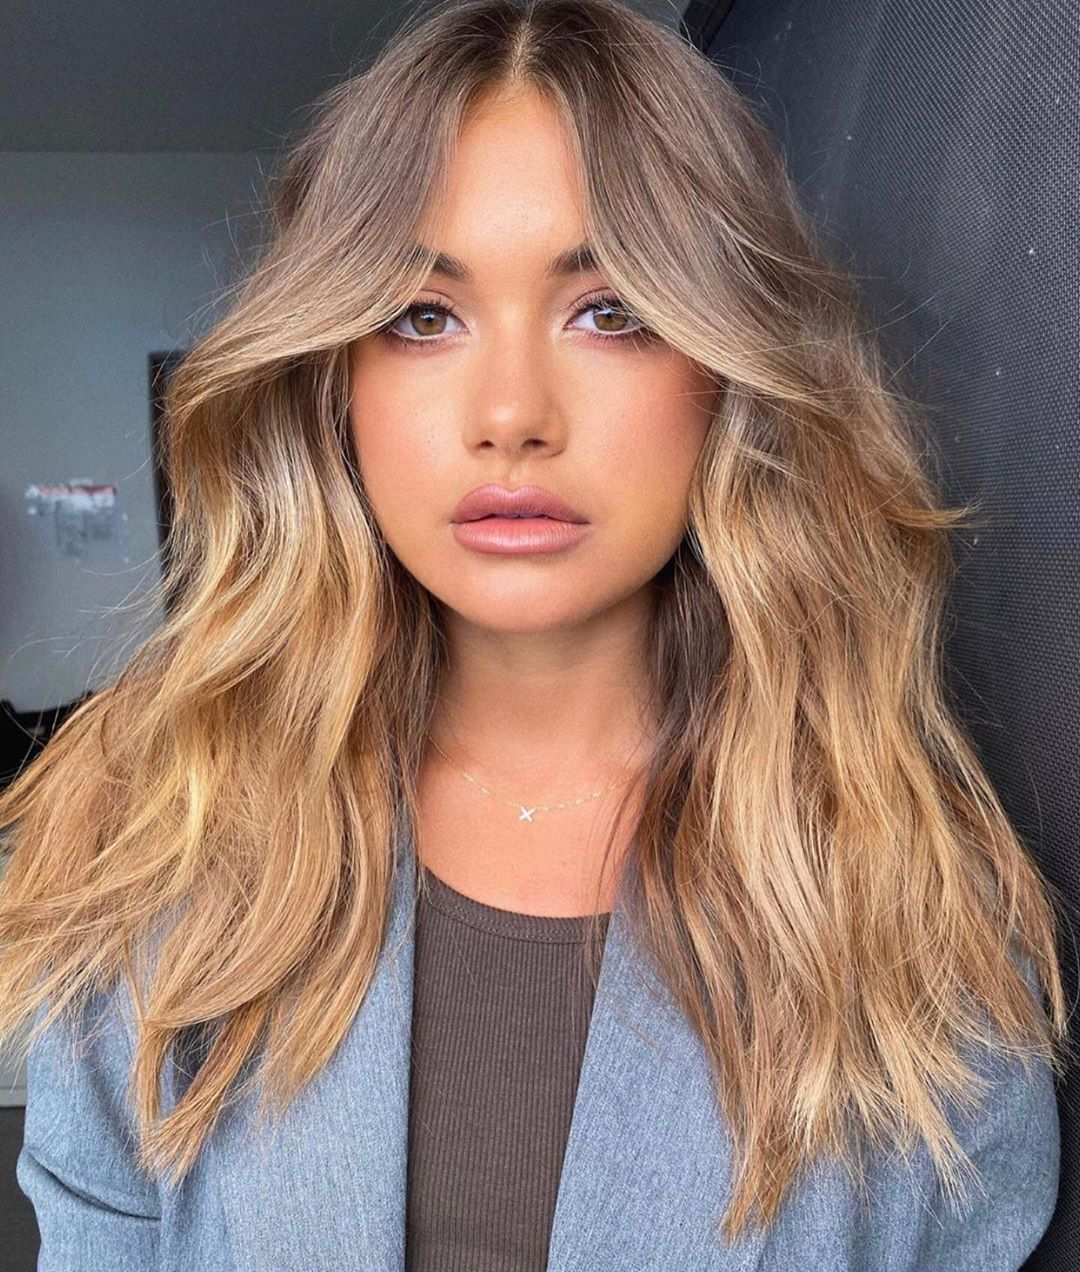 25 Slimming Hairstyles For Round Faces 2020 Ultimate Hair Guide In 2020 Haircuts For Wavy Hair Hair Styles Bangs With Medium Hair